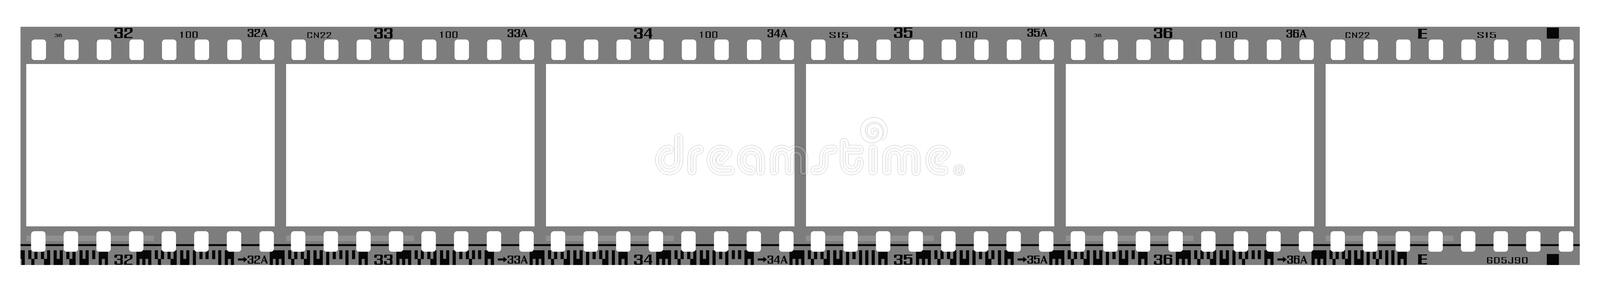 filmstrip inramniner negativen royaltyfri illustrationer